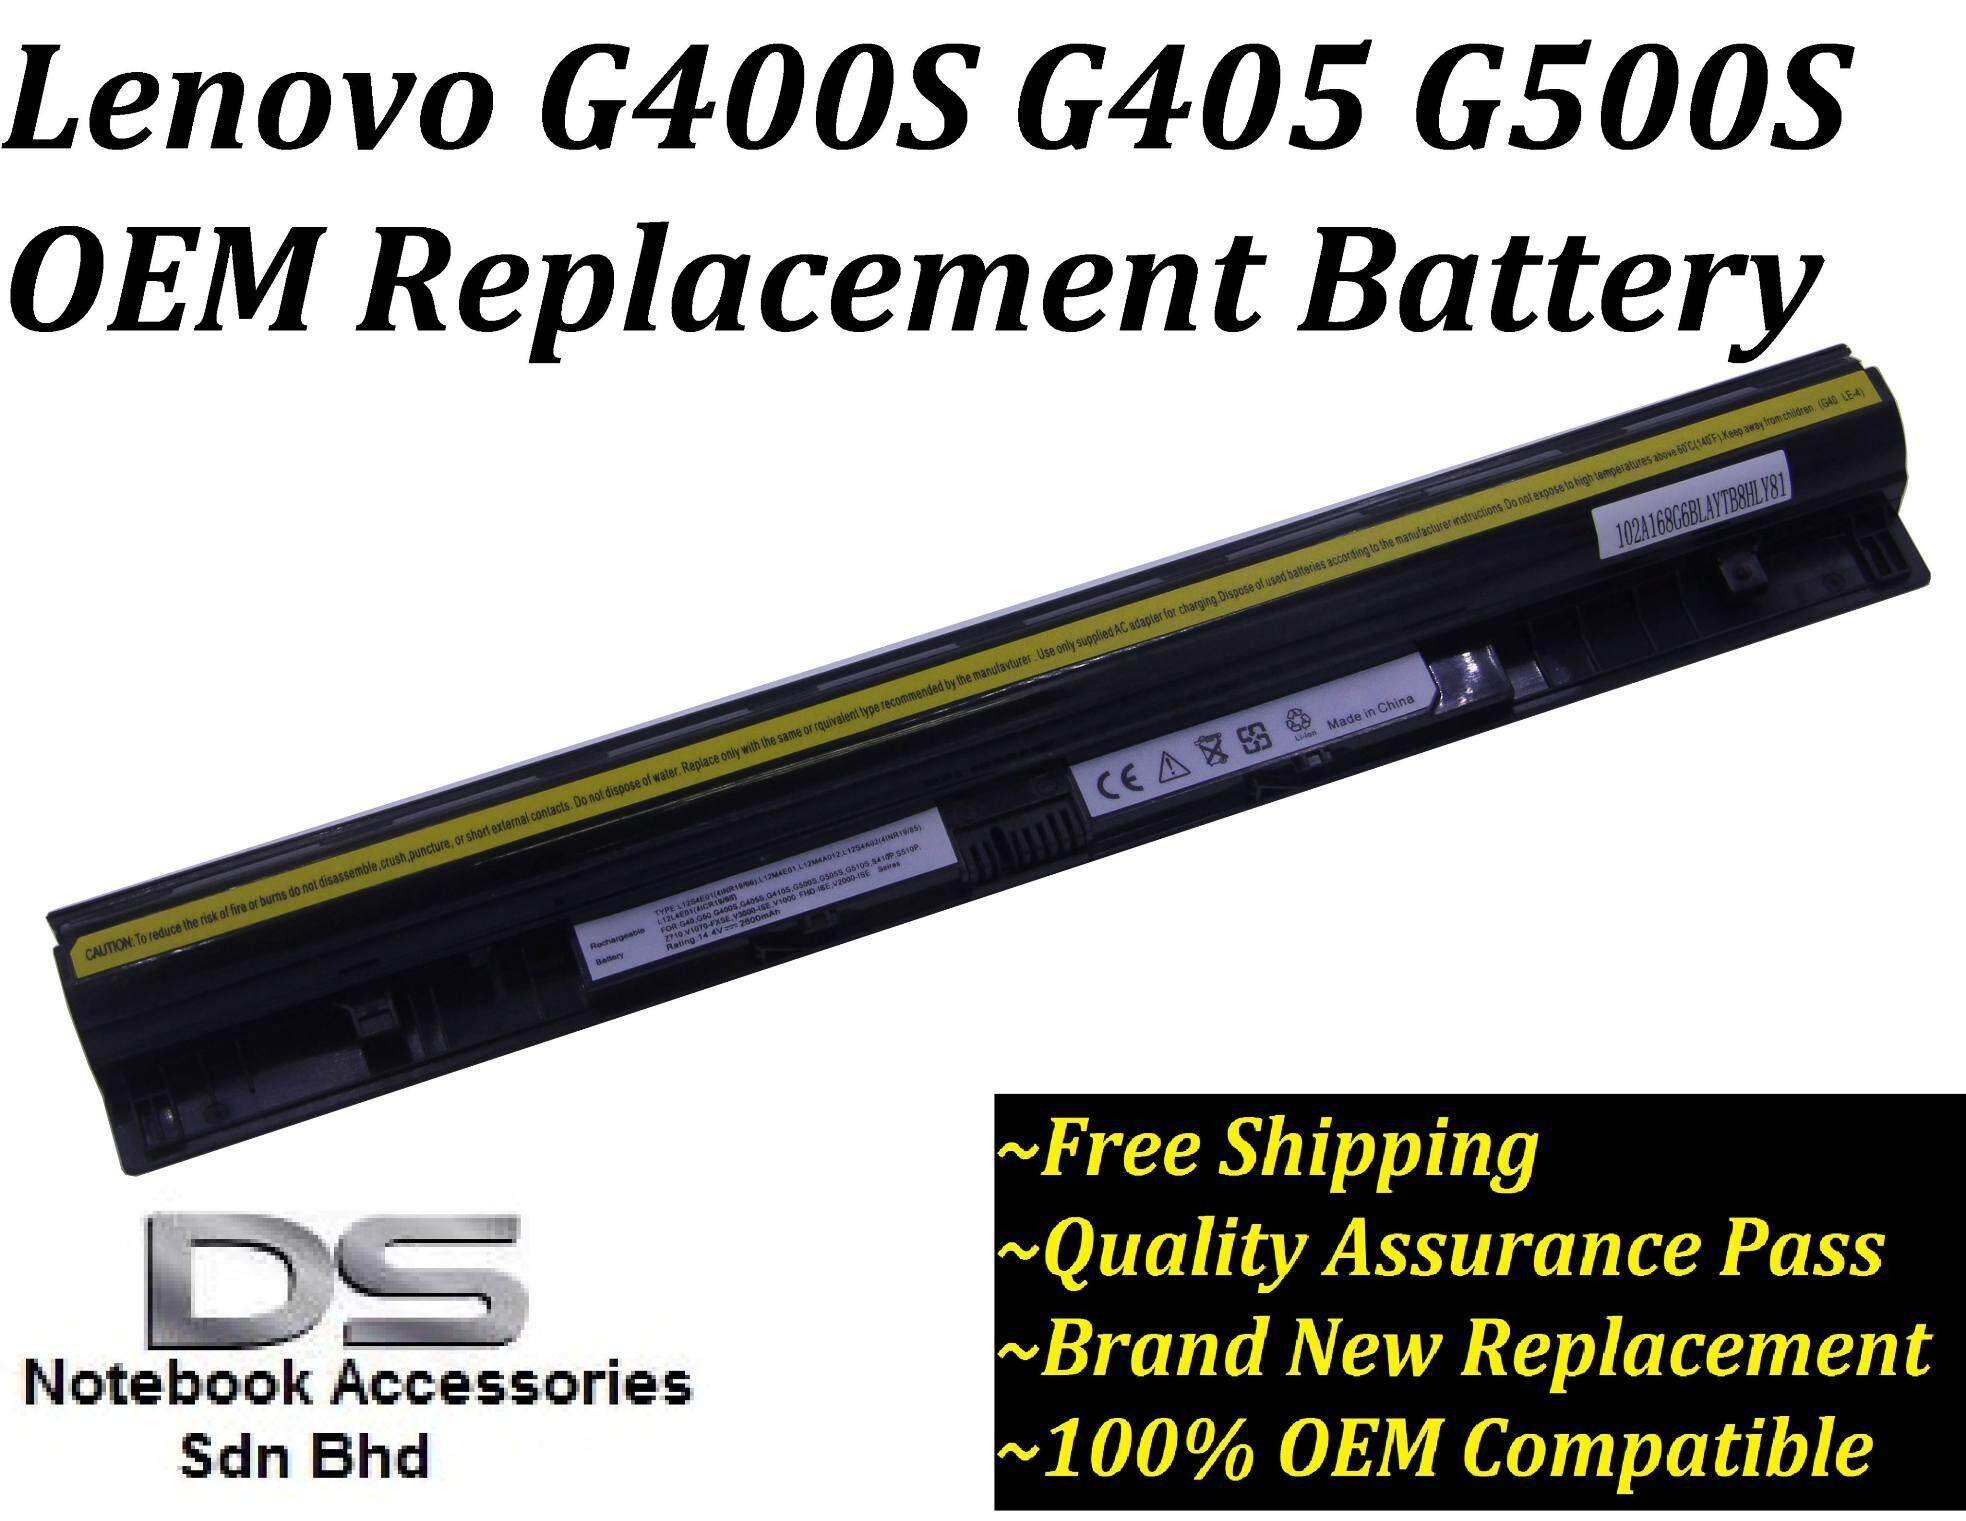 Features Replacement Lenovo G40 Keyboard Dan Harga Terbaru Info High Quality Laptop Ideapad 30 70 Series 4 Cell Battery G500s